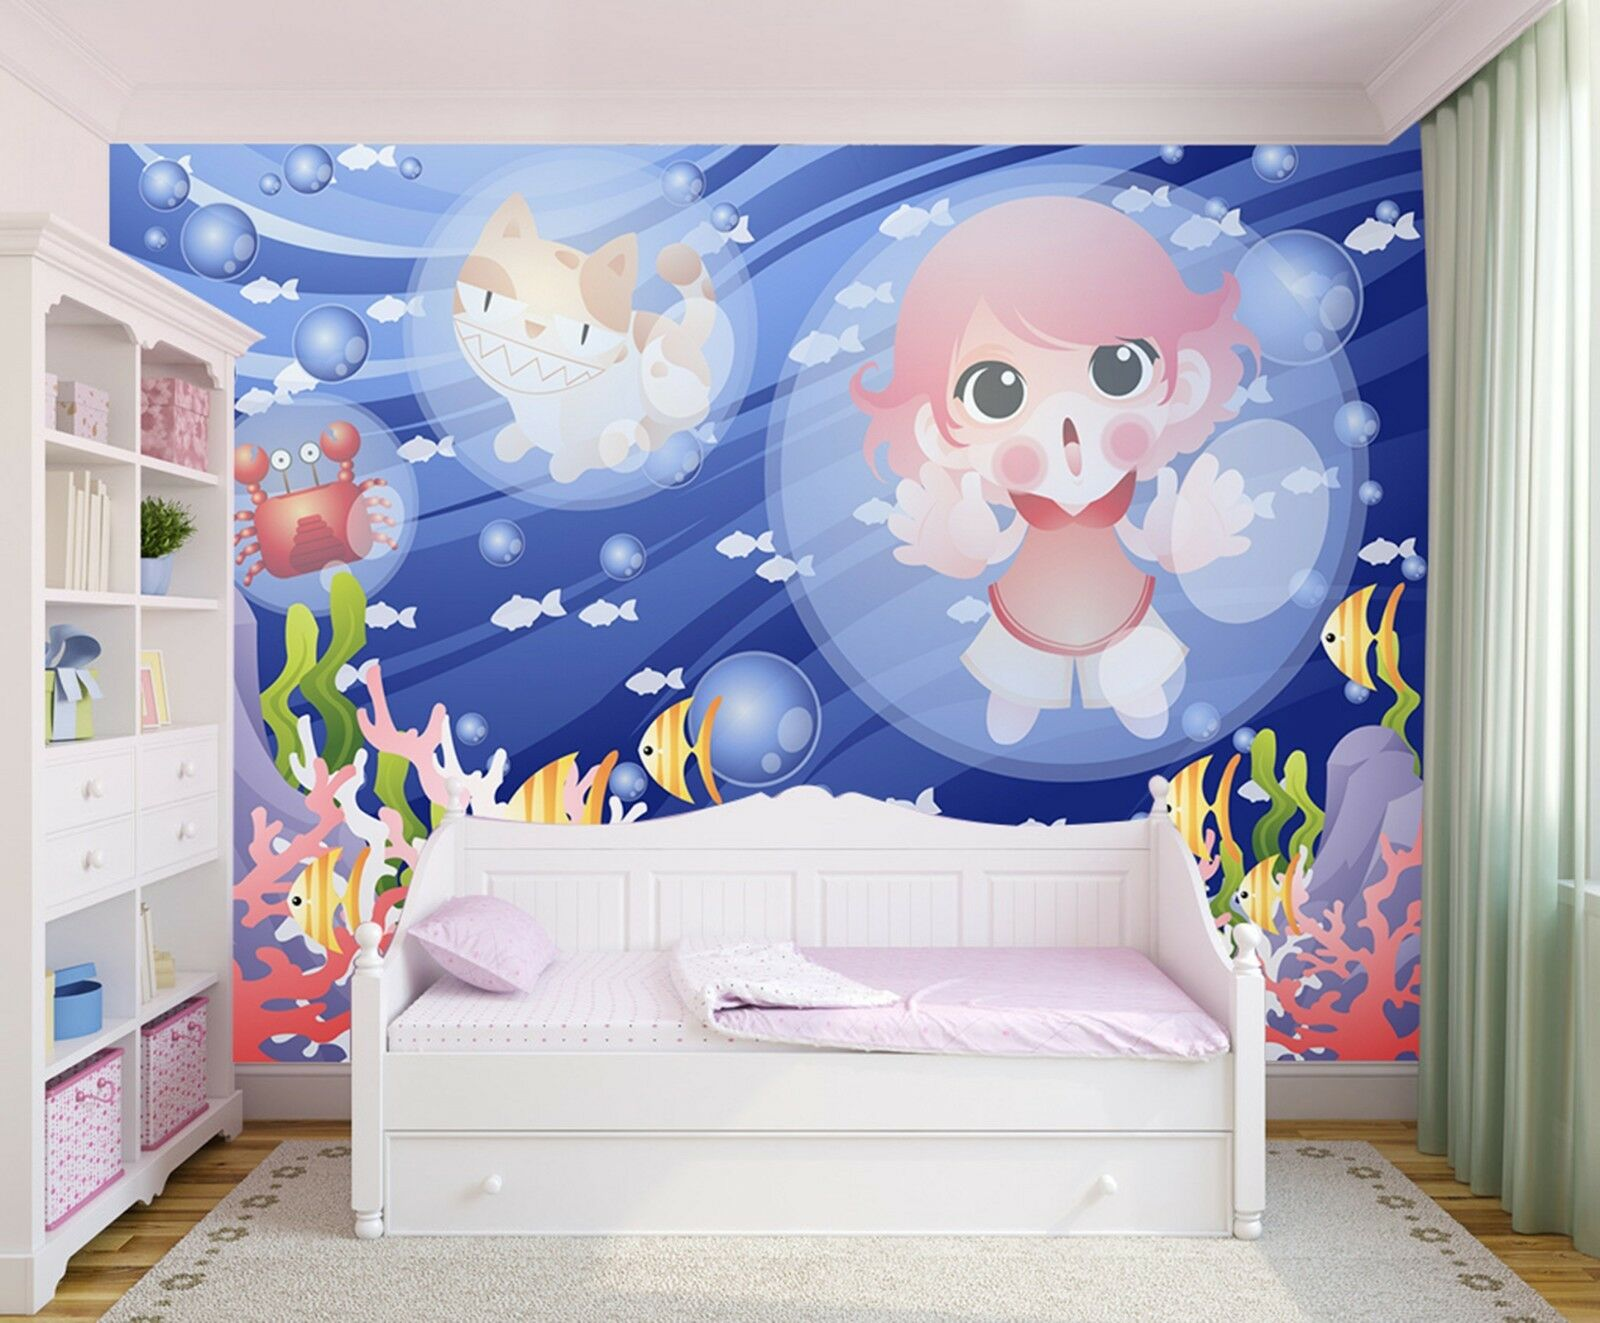 3D Cartoon Ocean World Wall Paper Print Decal Wall Deco Indoor wall Mural